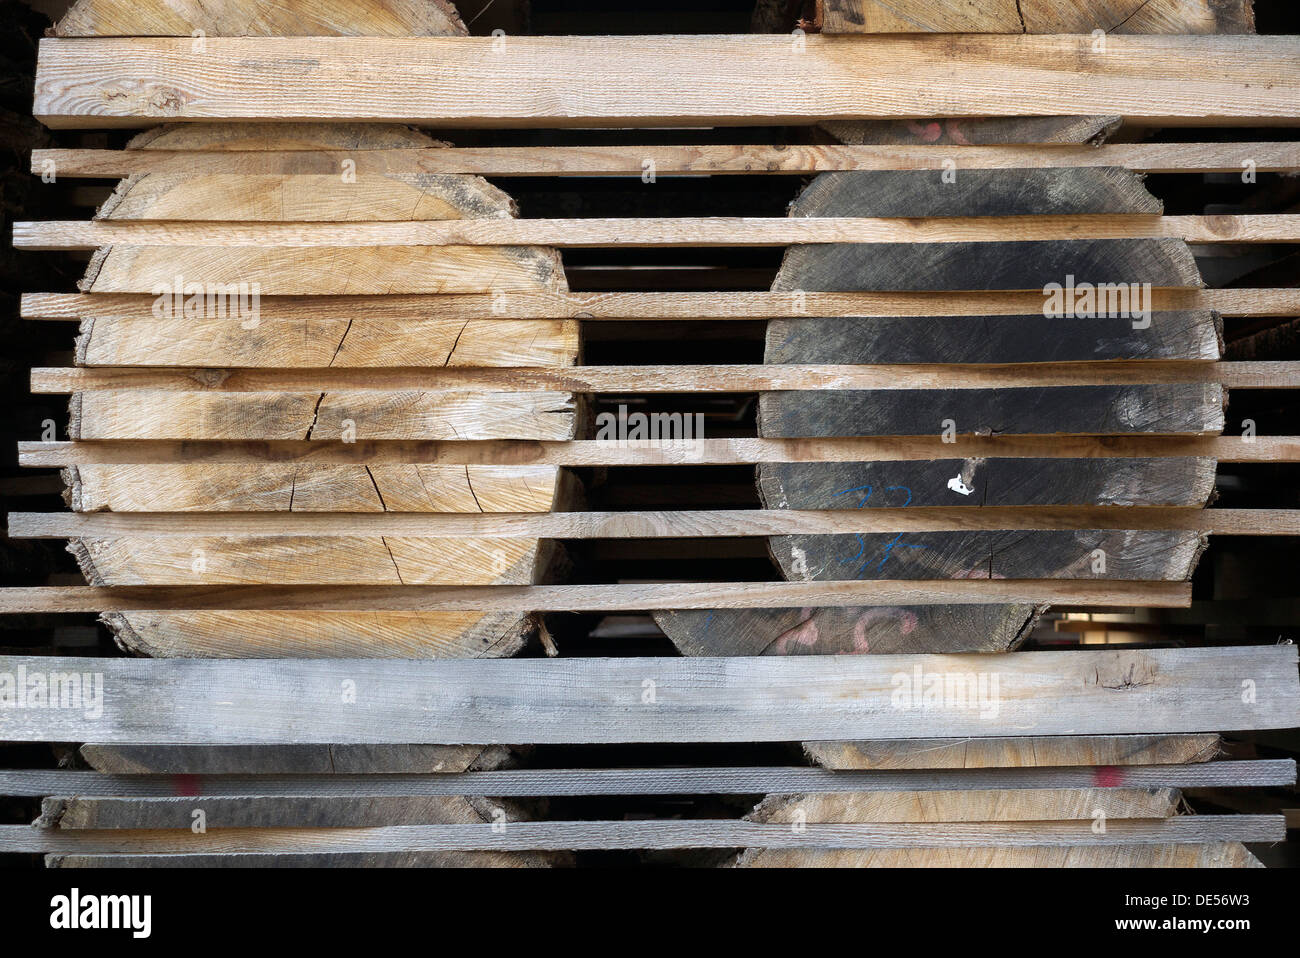 Storage of sawn timber logs in longitudinal direction for better drying in a sawmill Stock Photo